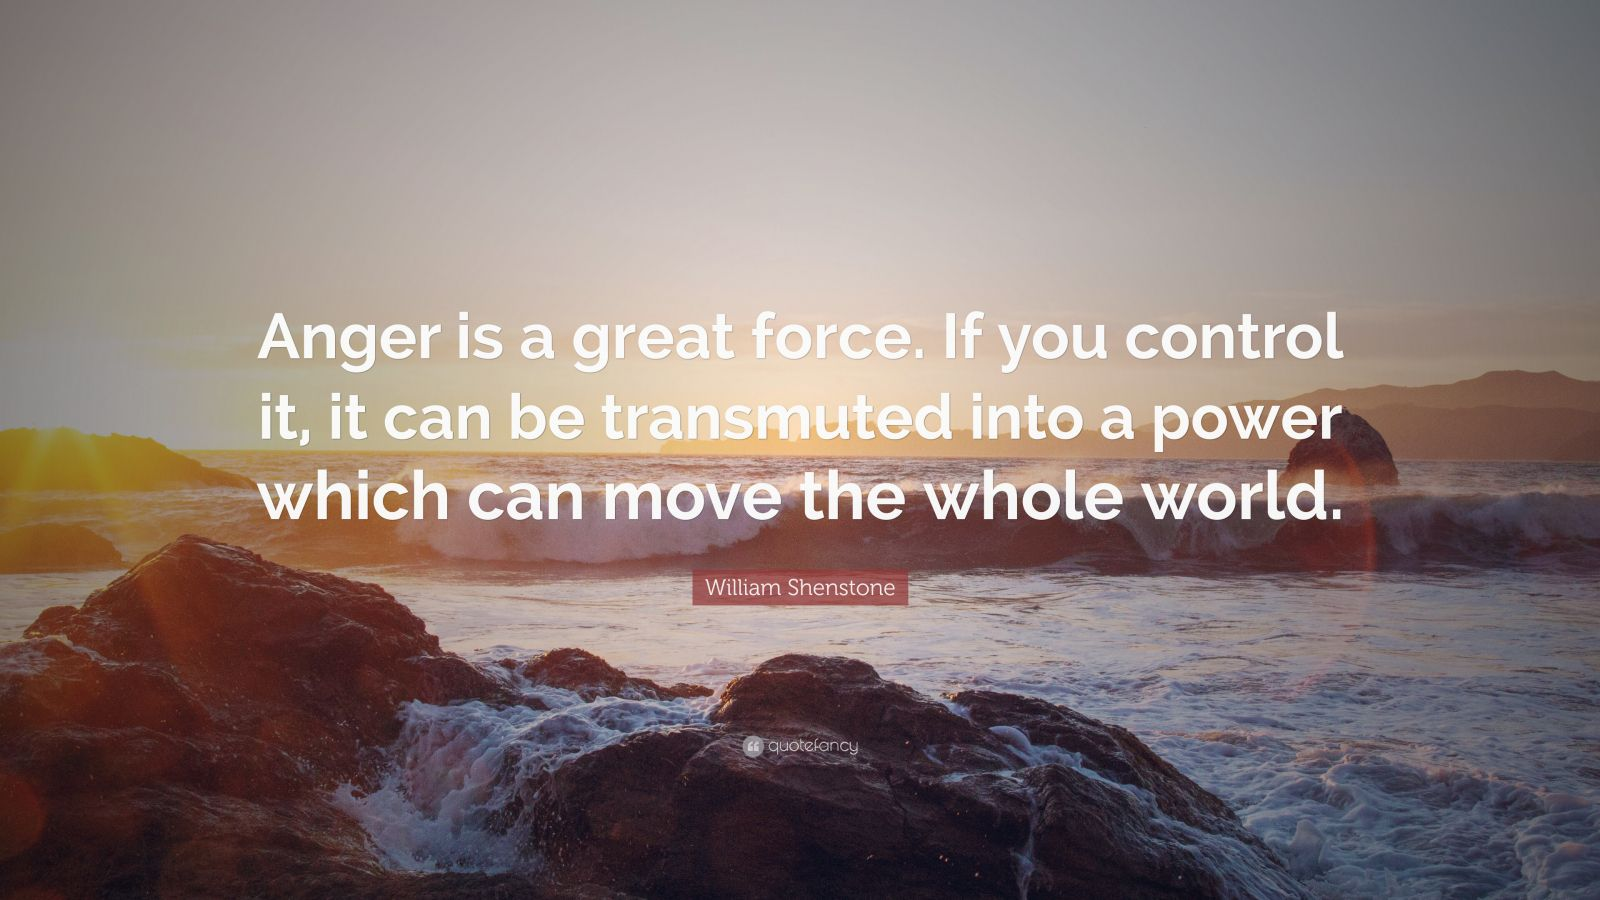 """William Shenstone Quote: """"Anger is a great force. If you control it, it can be transmuted into a power which can move the whole world."""""""